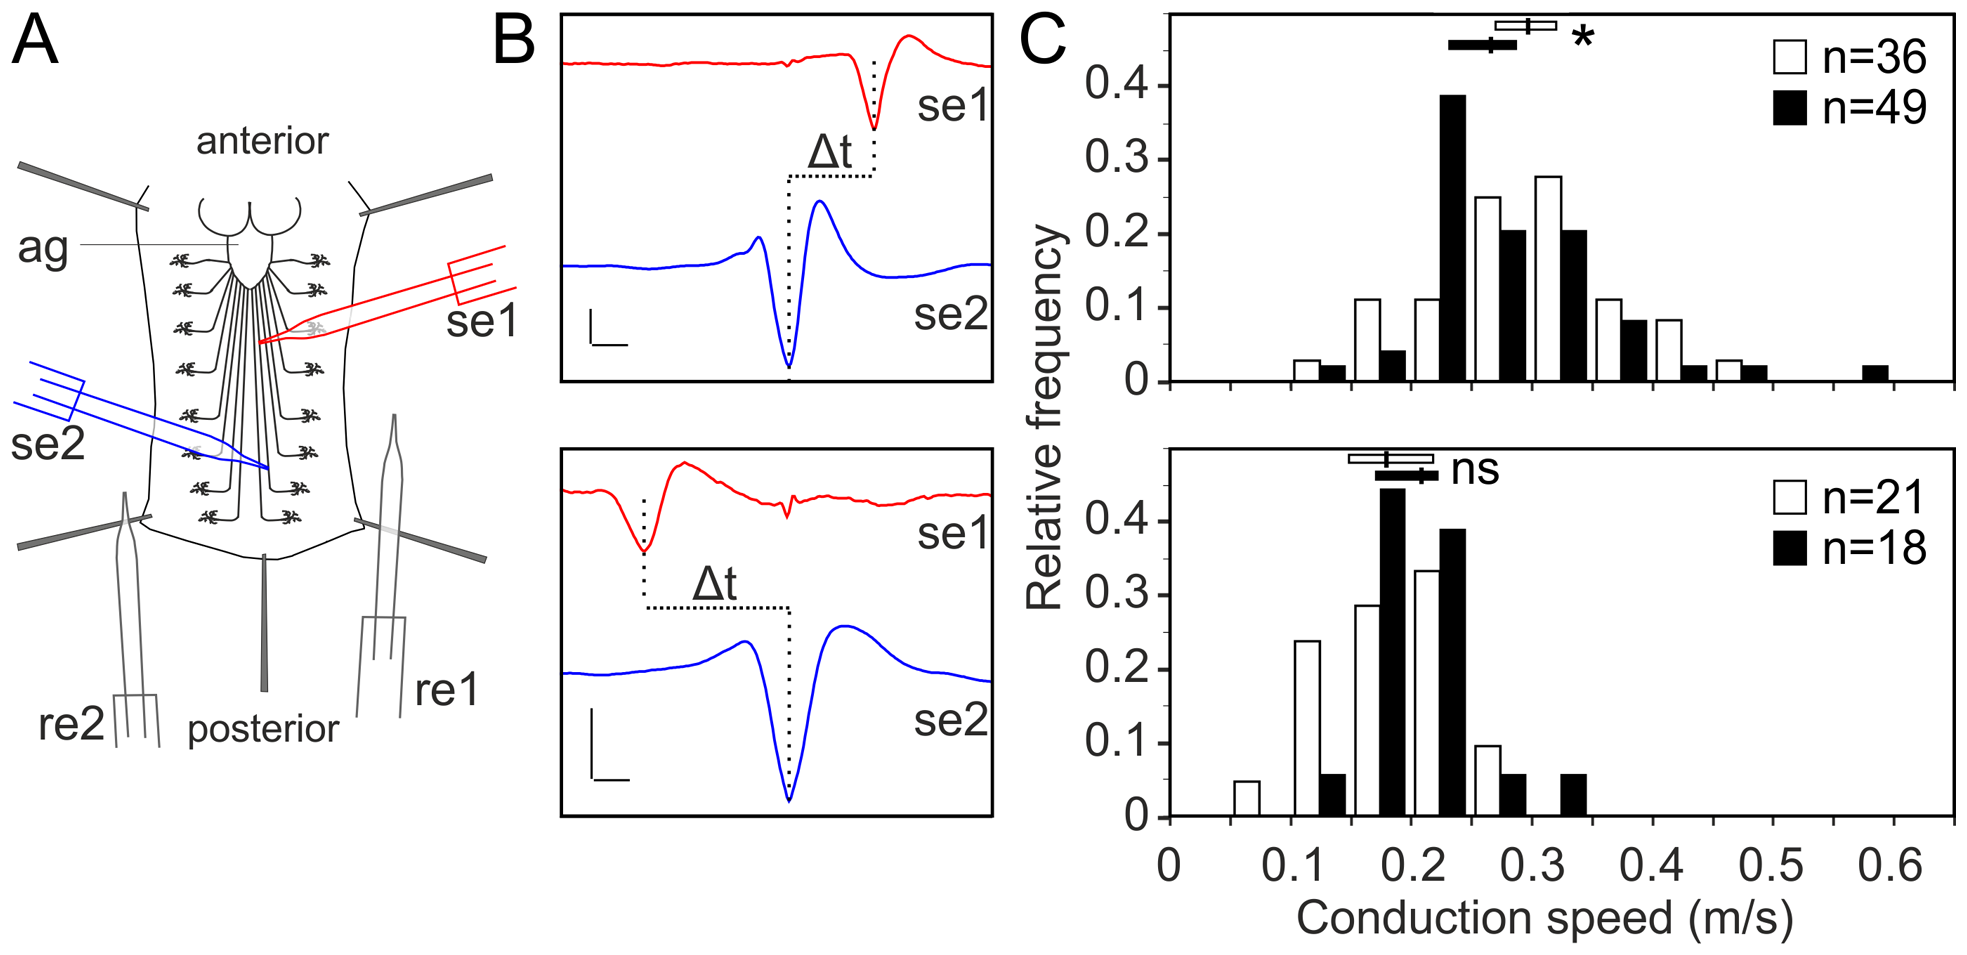 Glial inhibition of <i>lace</i> delays afferent spike propagation.